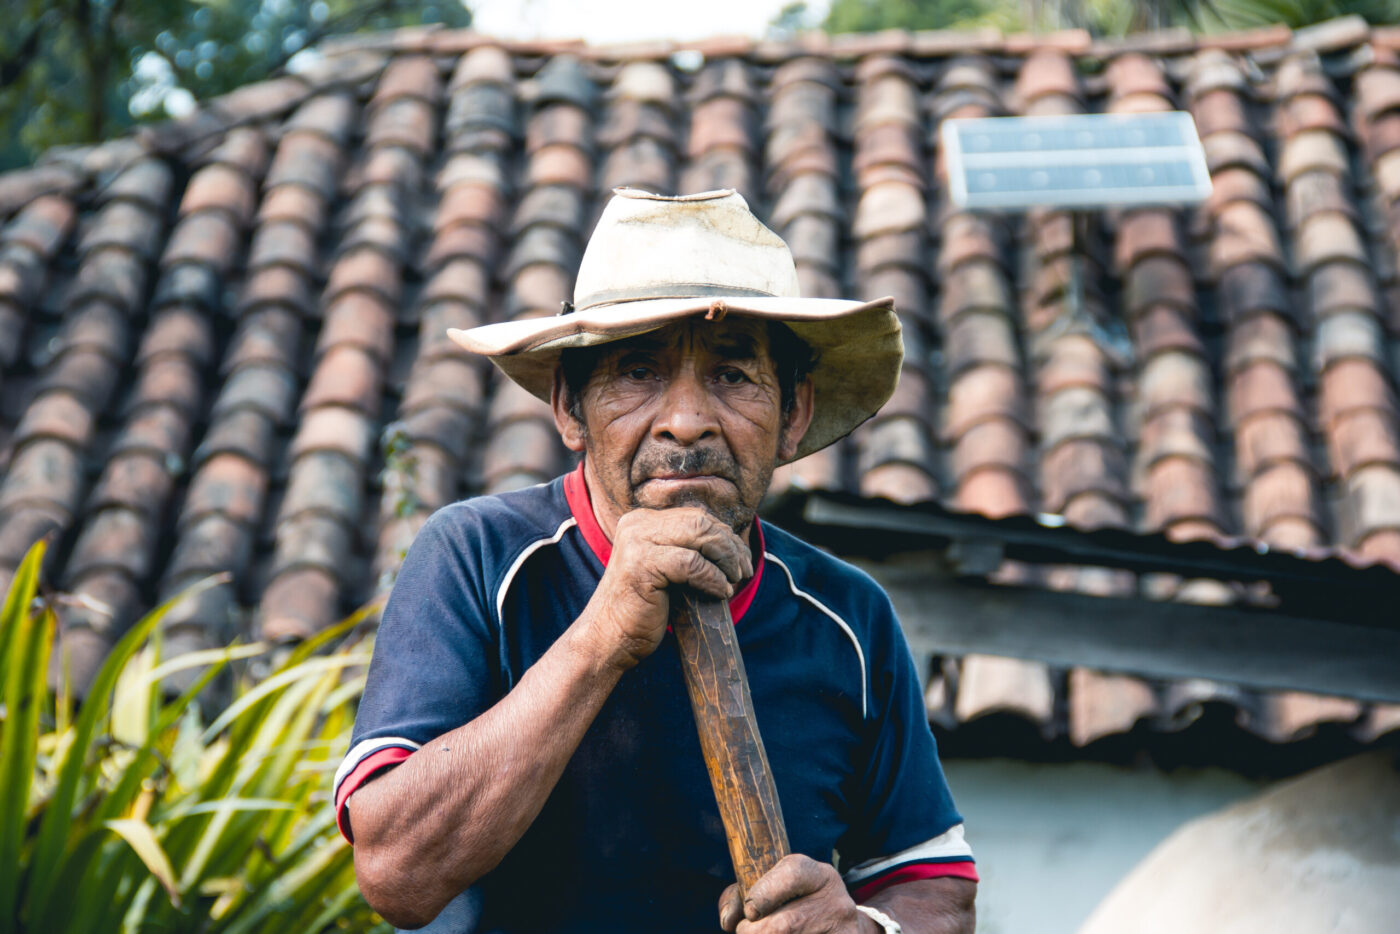 Farmer struggles with food security in Central America Dry Corridor